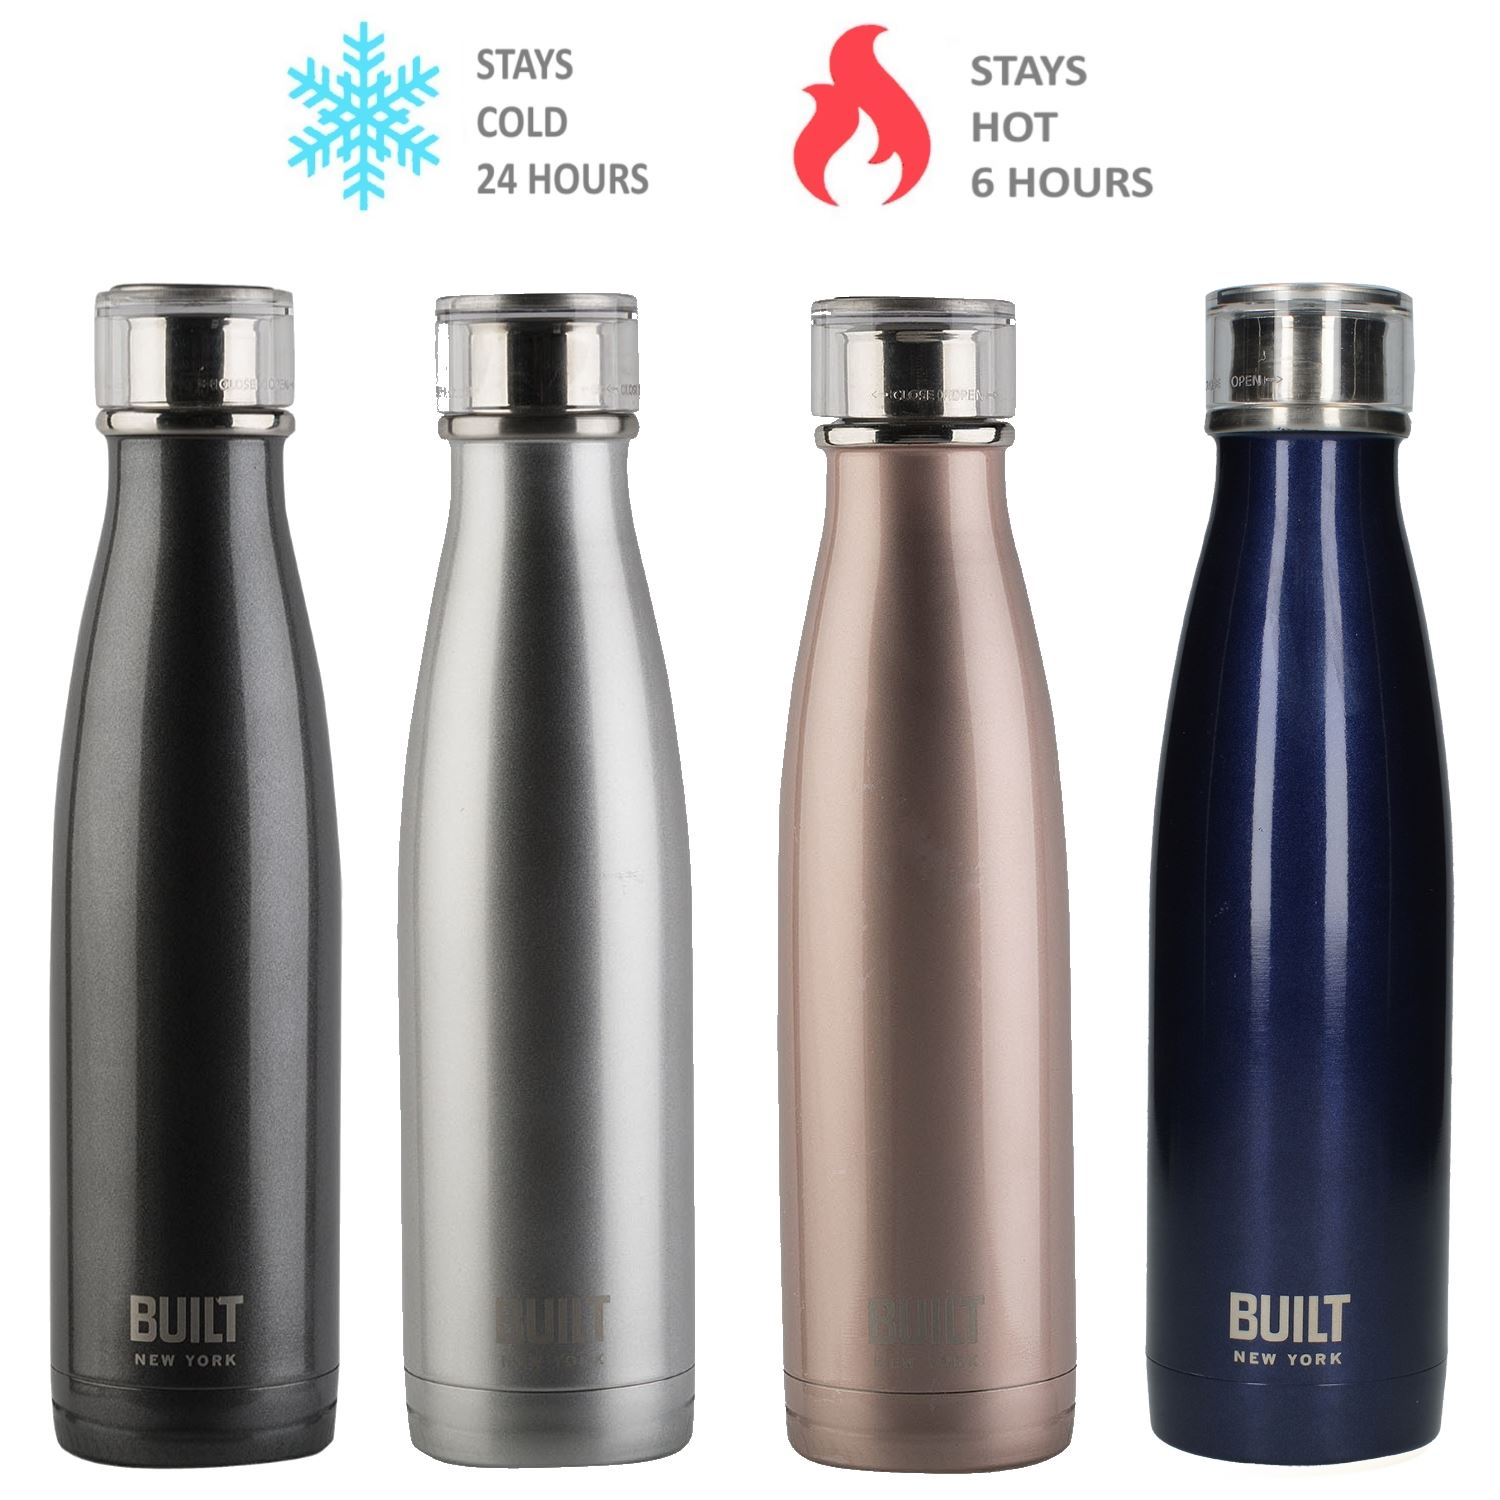 1c272a85cf Details about Stainless Steal Flask Vacuum Insulated Double Walled Thermal  Cold Water Bottle